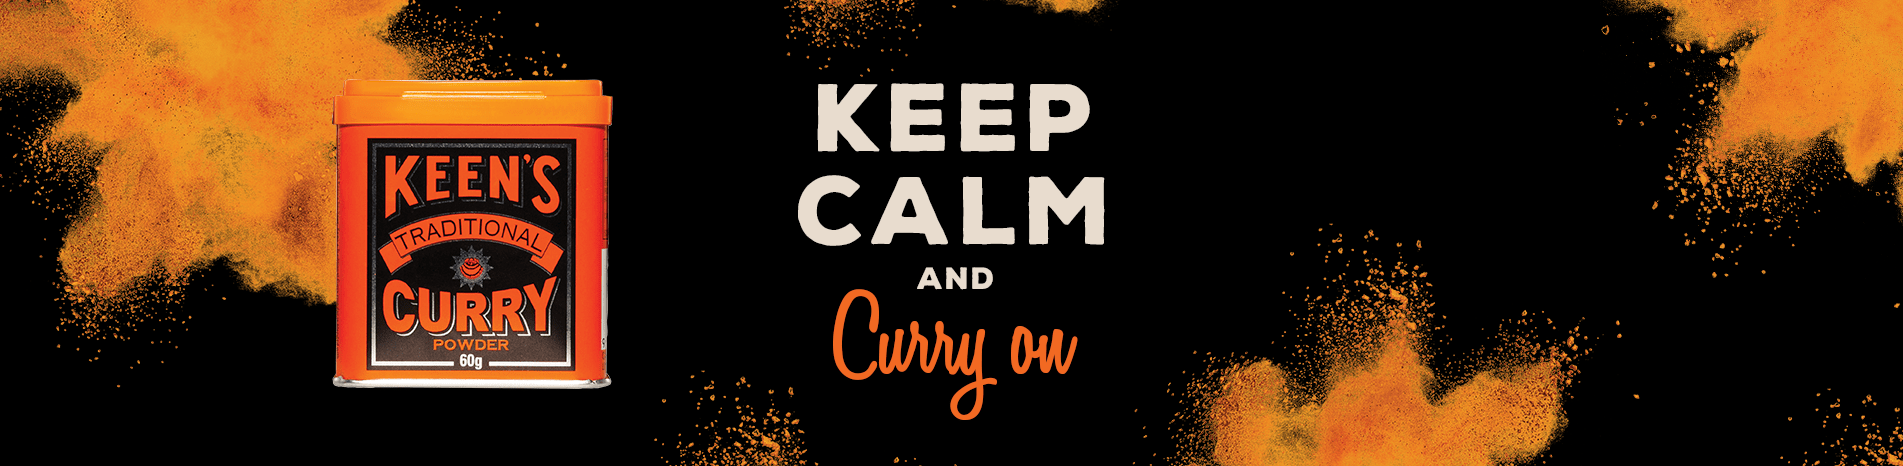 Keep-Calm-and-Curry-On-banner